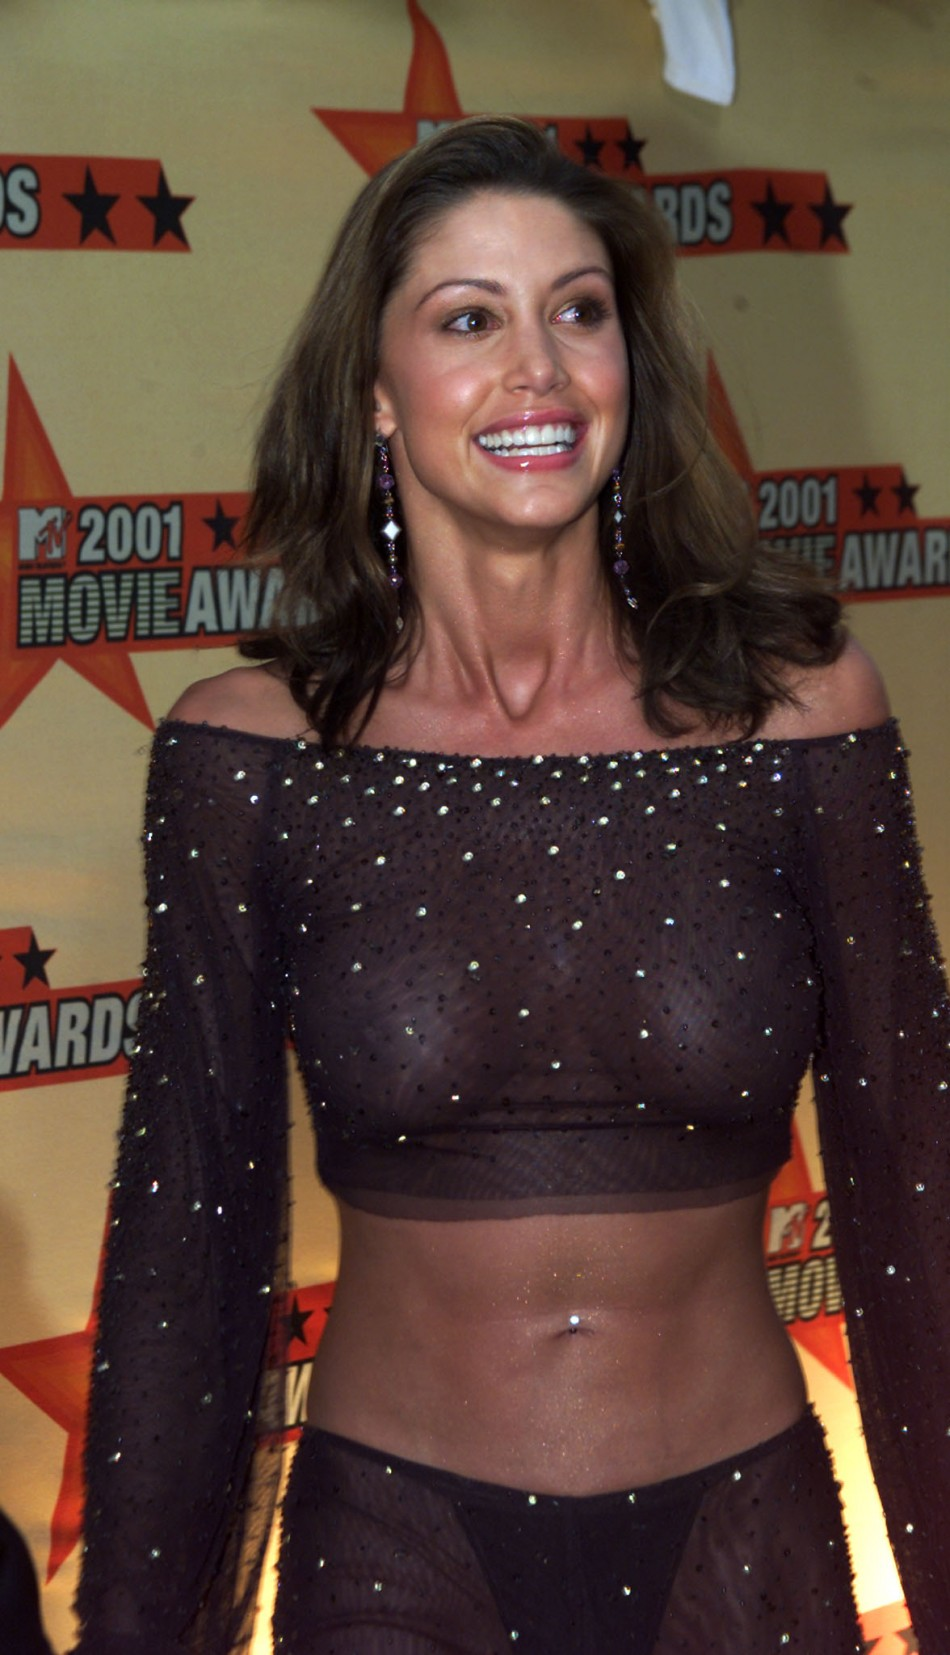 how did shannon elizabeth fall from top 10 to not mentioned at all?   Sports, Hip Hop & Piff ...